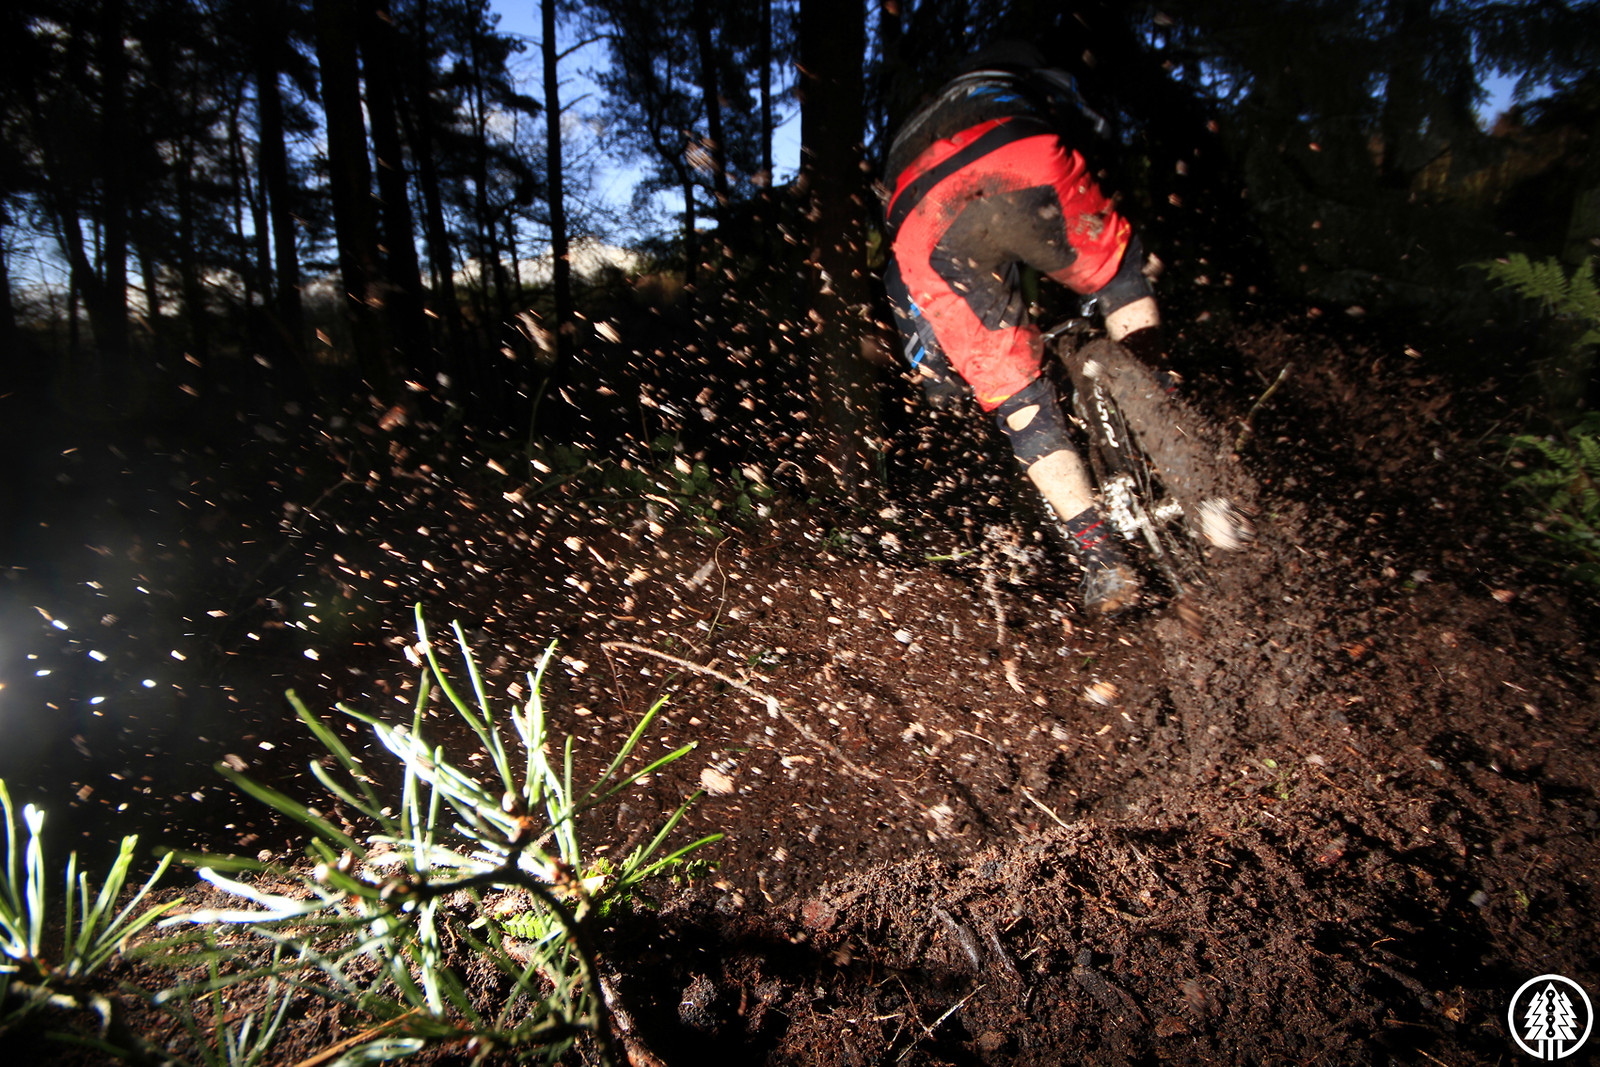 Lit up loam - CaldwellVisuals - Mountain Biking Pictures - Vital MTB